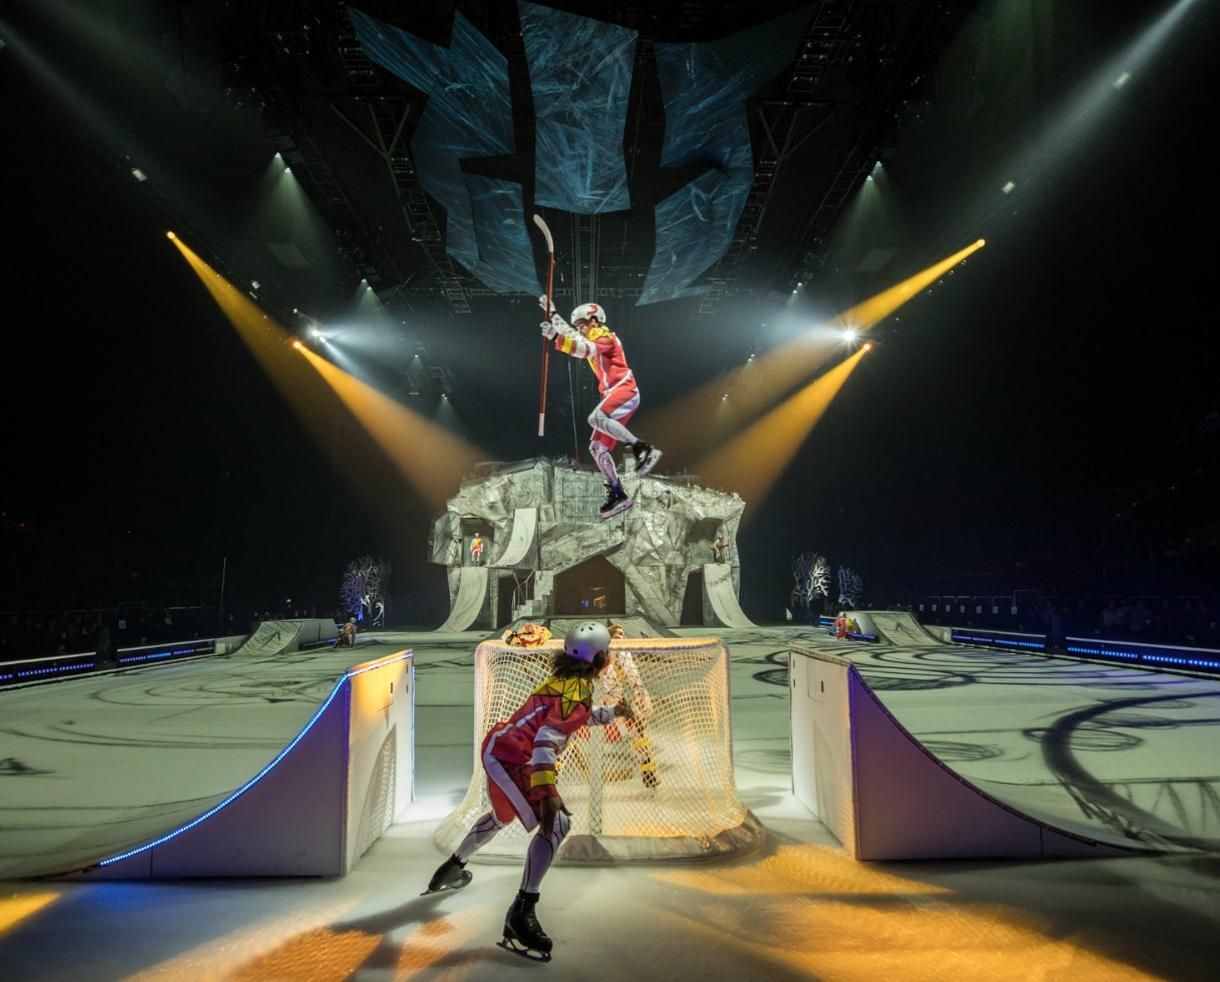 Up to 25% Off Cirque du Soleil's Crystal at Capital One Arena